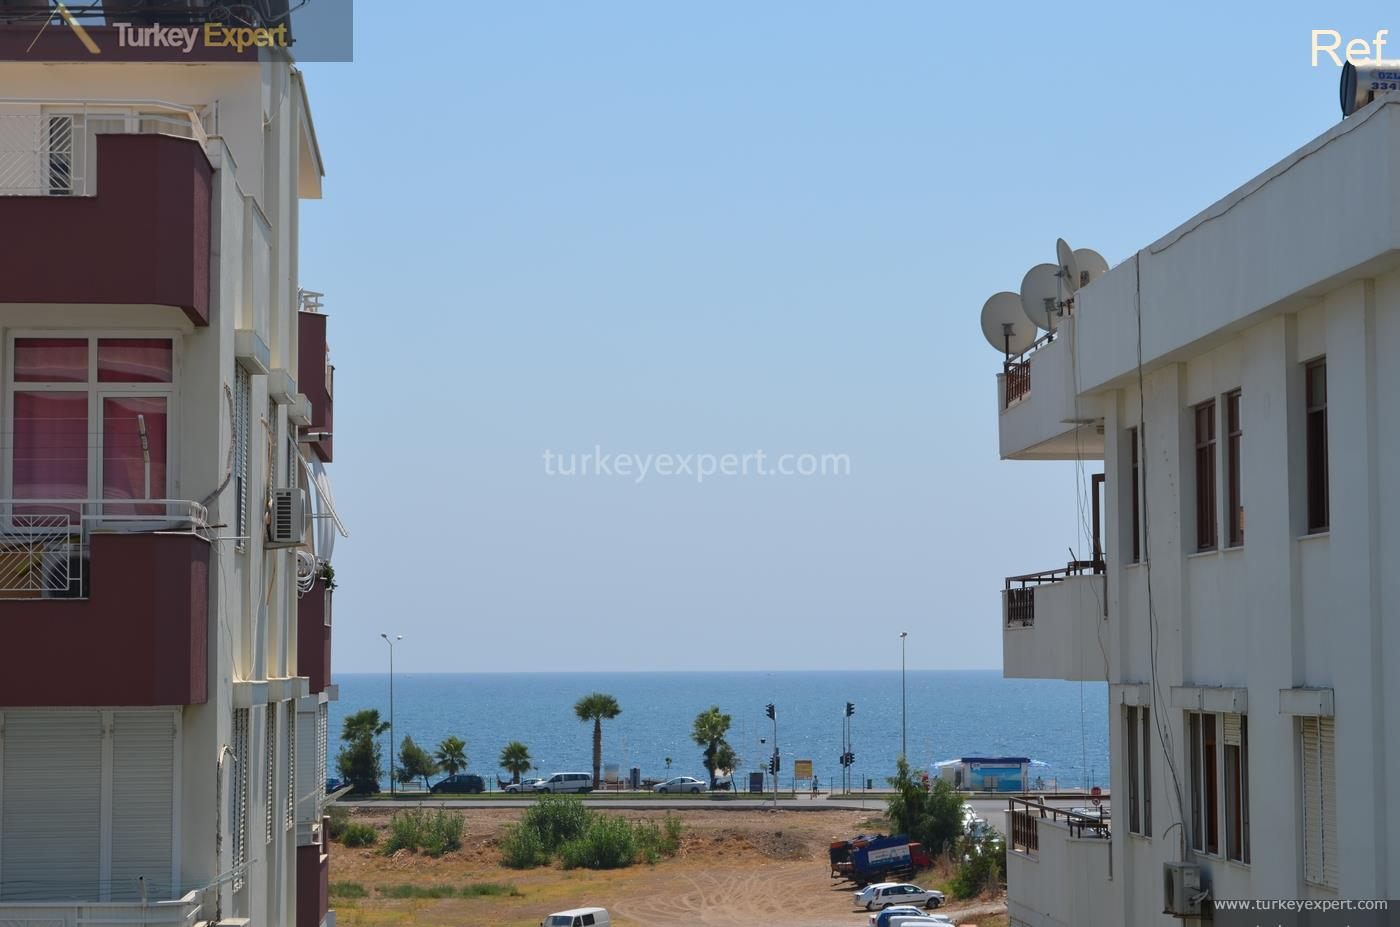 1apartments for sale in antalya56.